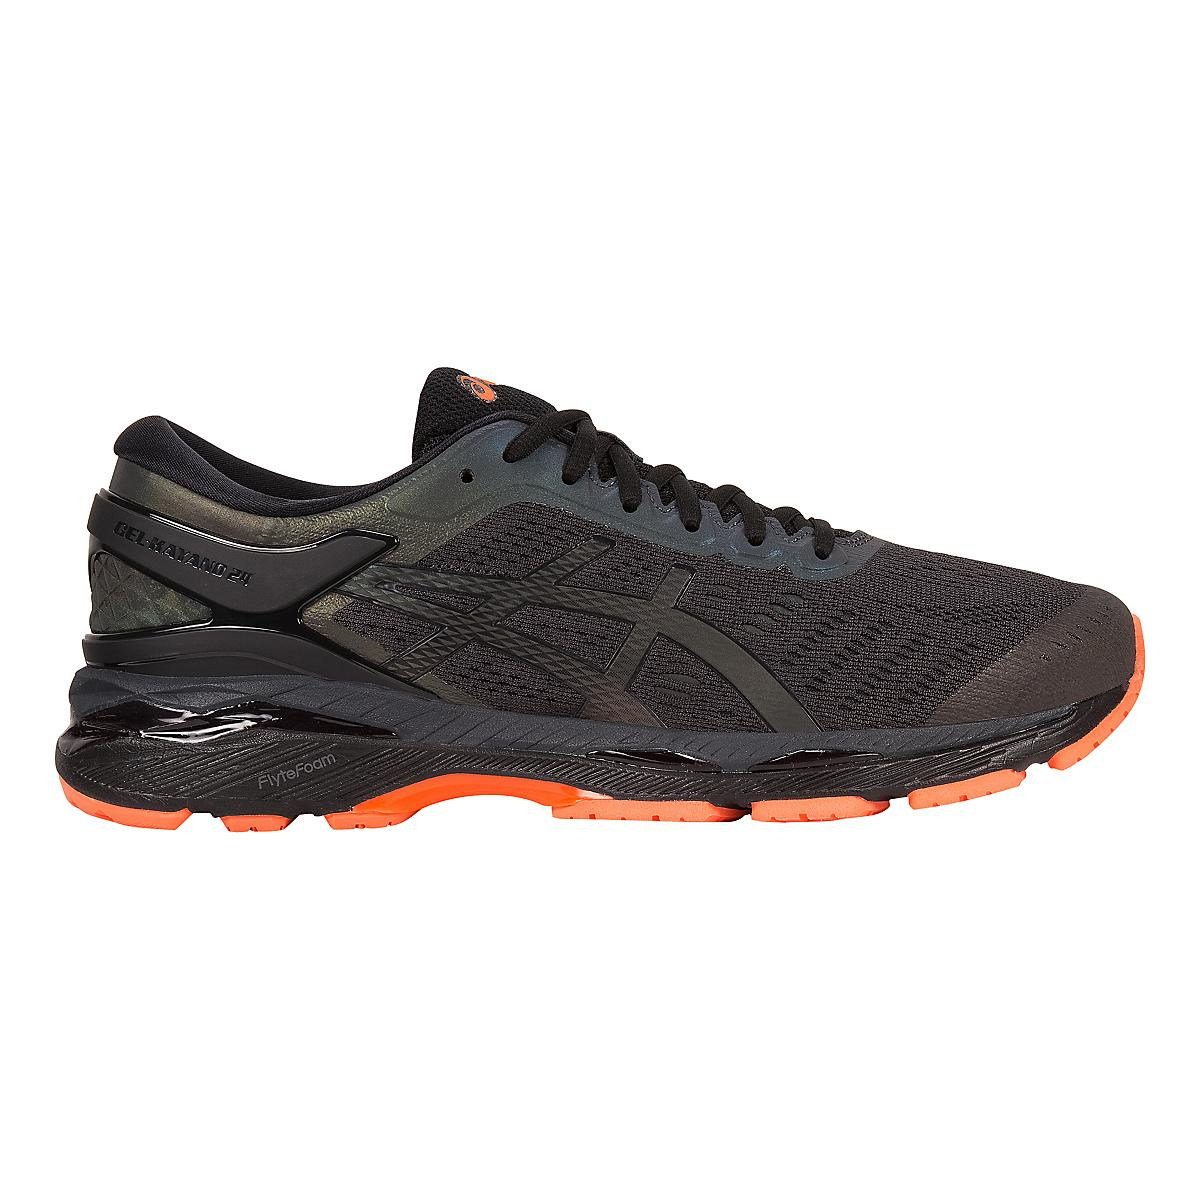 Chaussure de Show course pour homme Runner ASICS GEL Kayano Road 24 Lite Show chez Road Runner Sports f7e2a52 - propertiindonesia.site